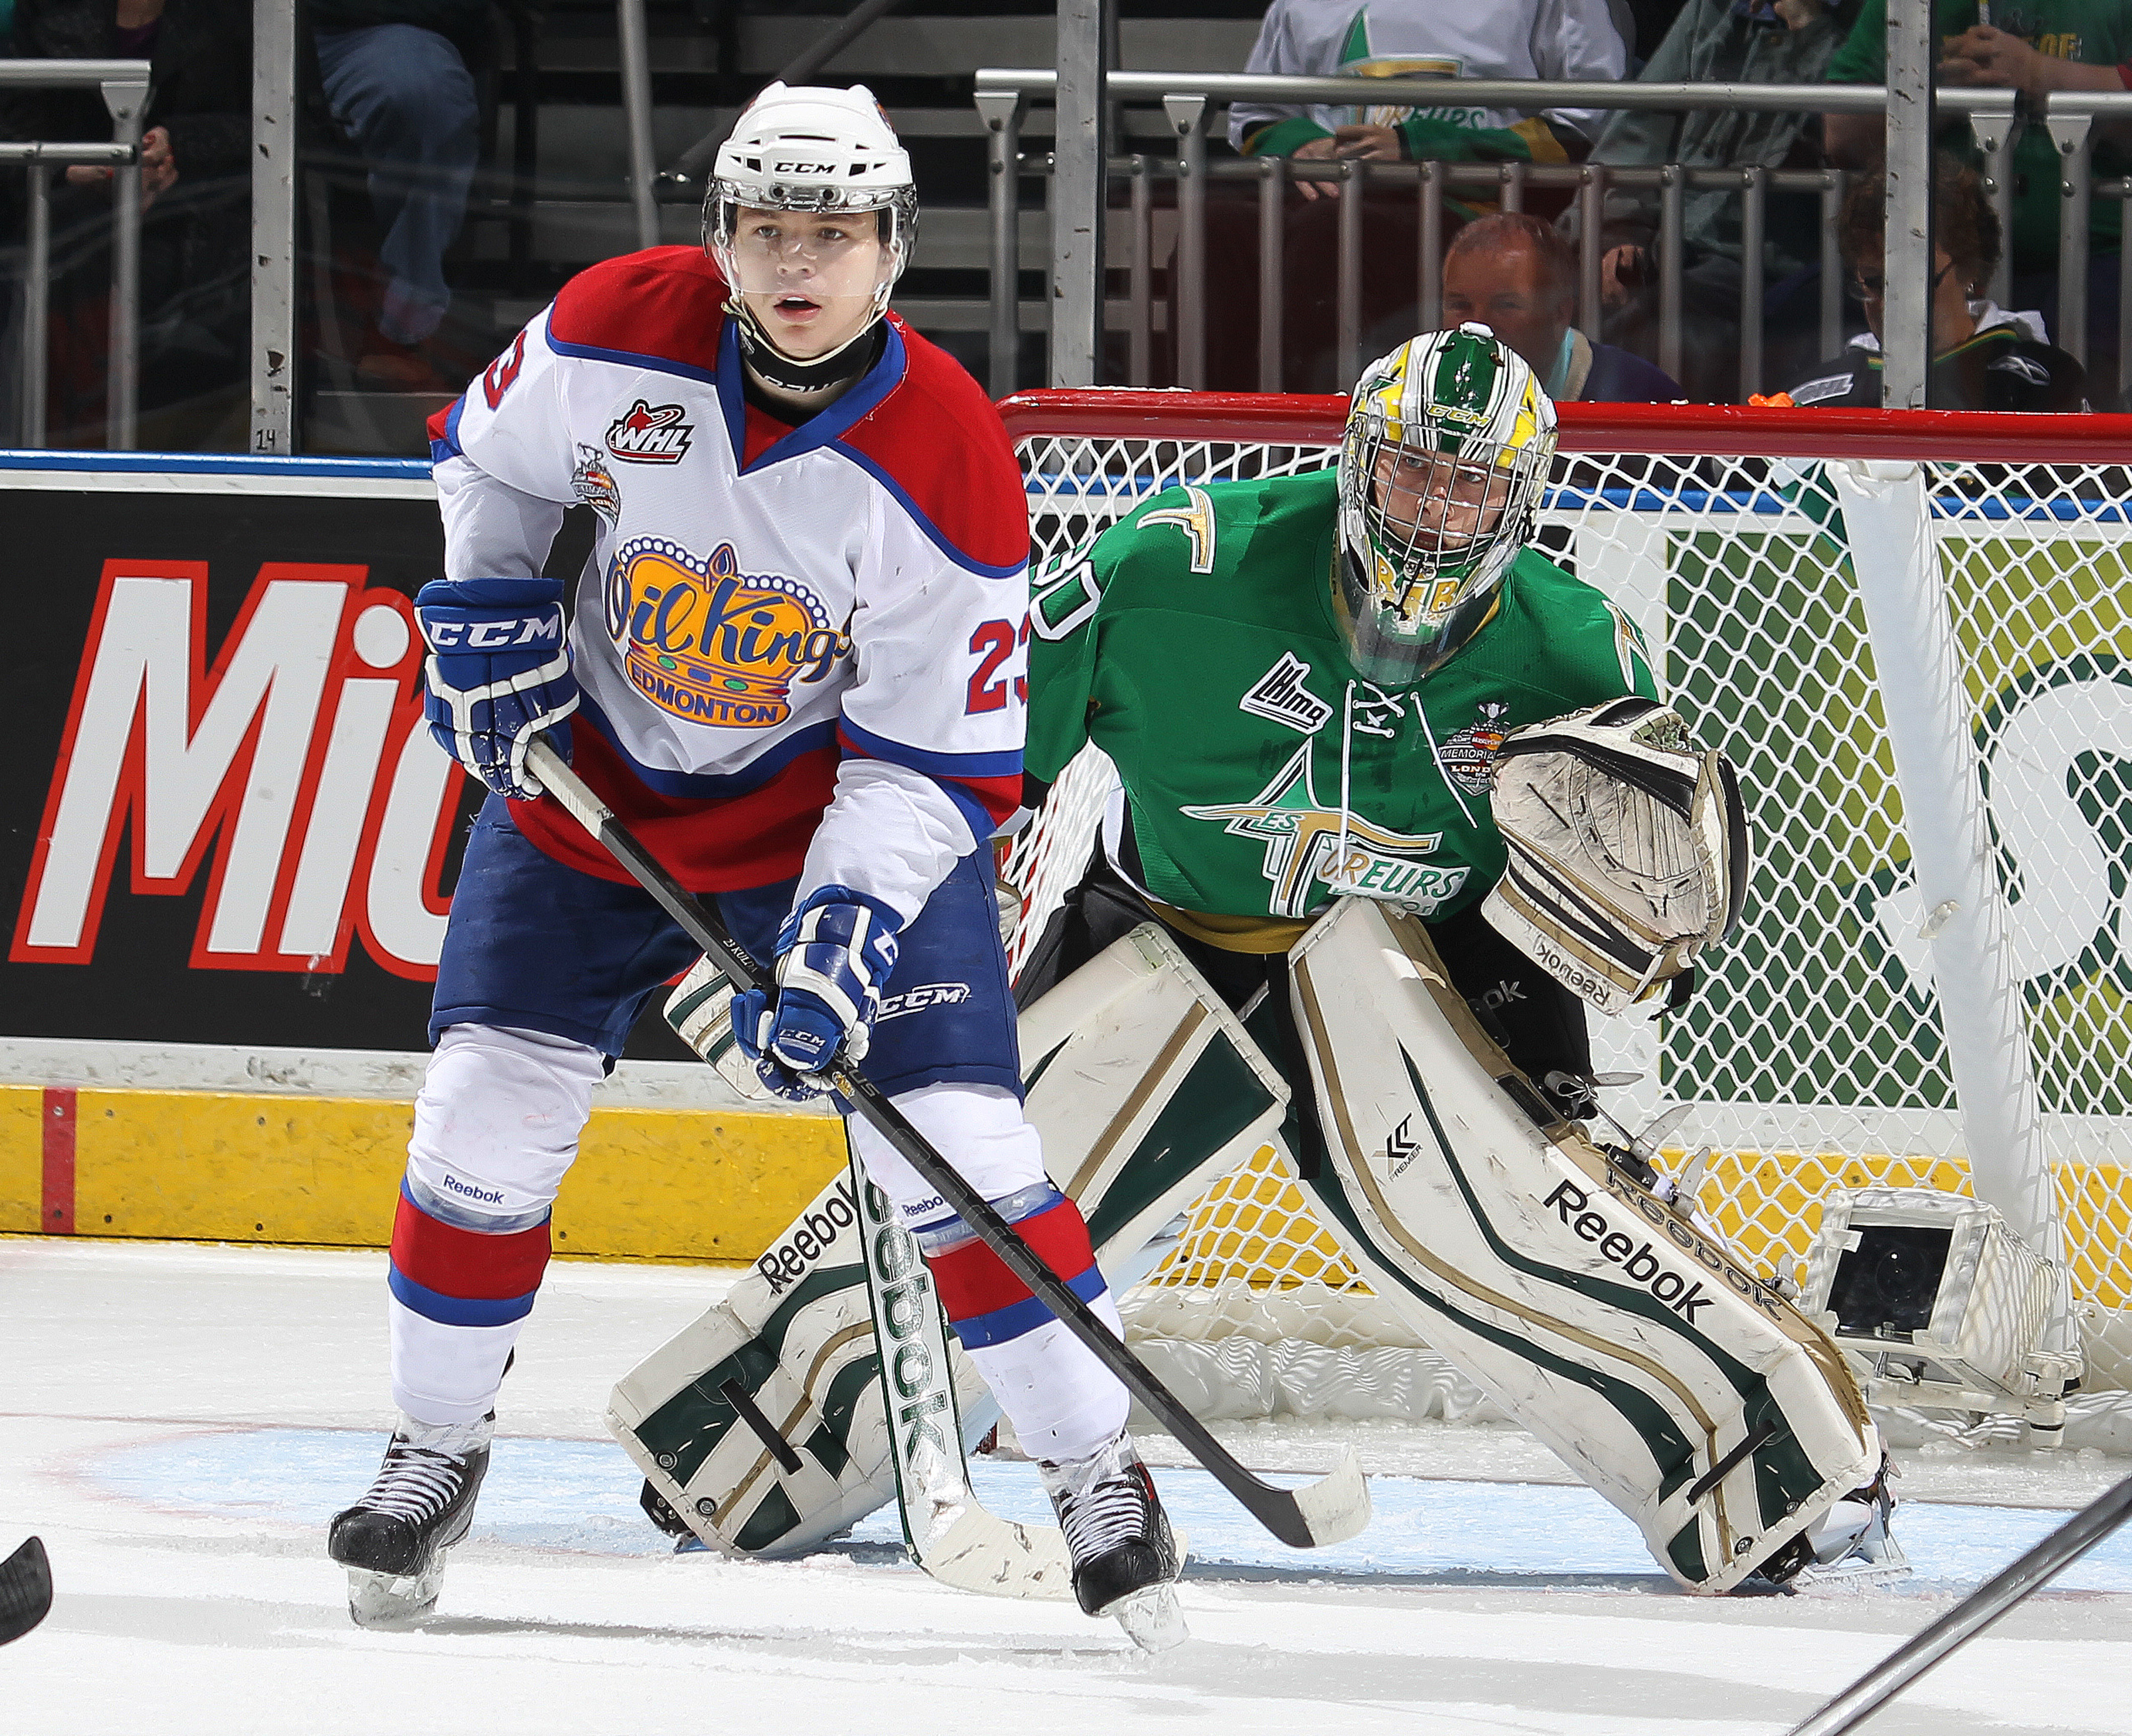 Here's Edgars Kulda (left) getting in the Val d'Or goalie's way in the 2014 Memorial Cup.